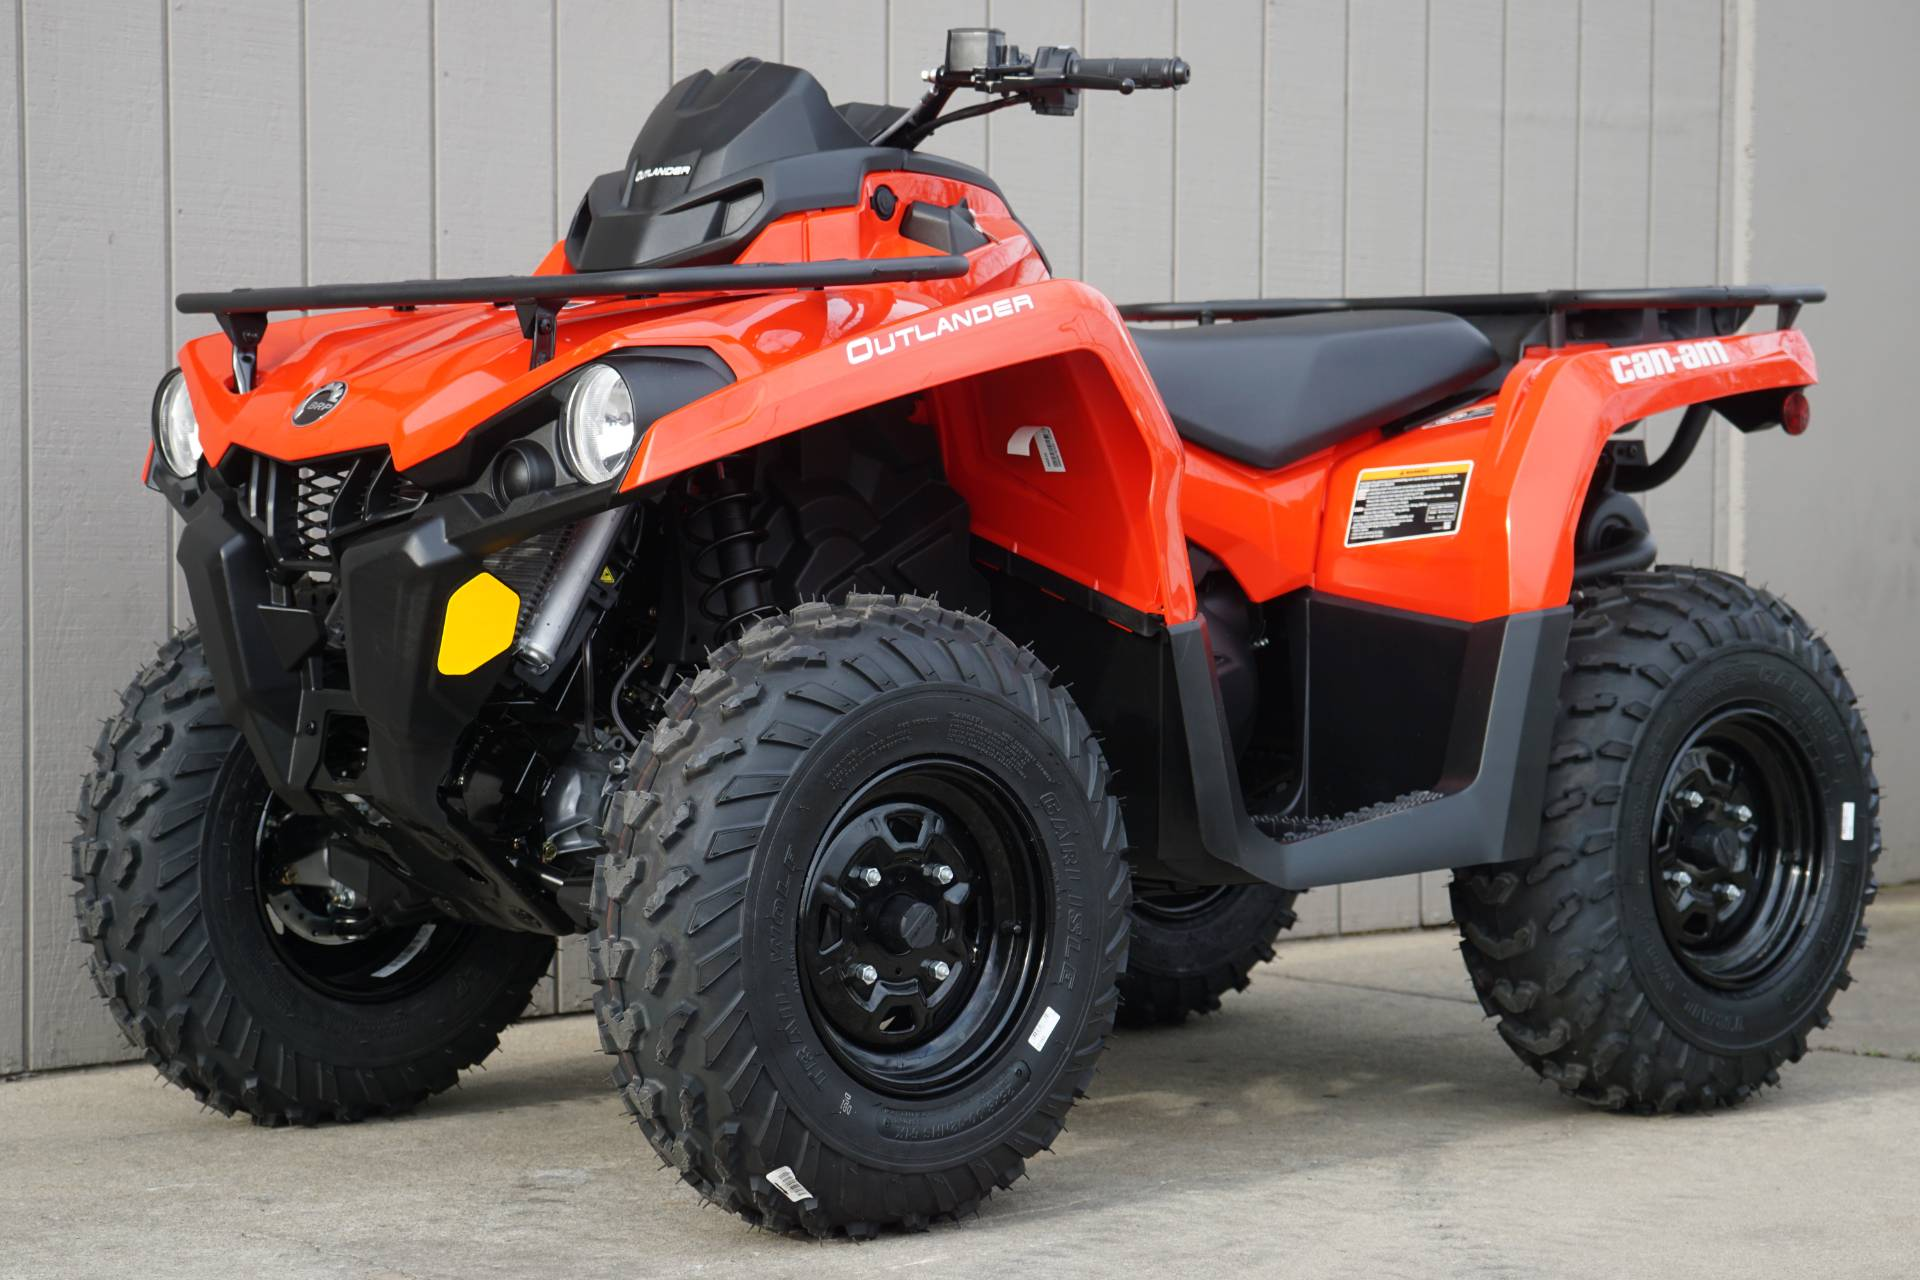 2019 Can-Am Outlander 450 for sale 146549